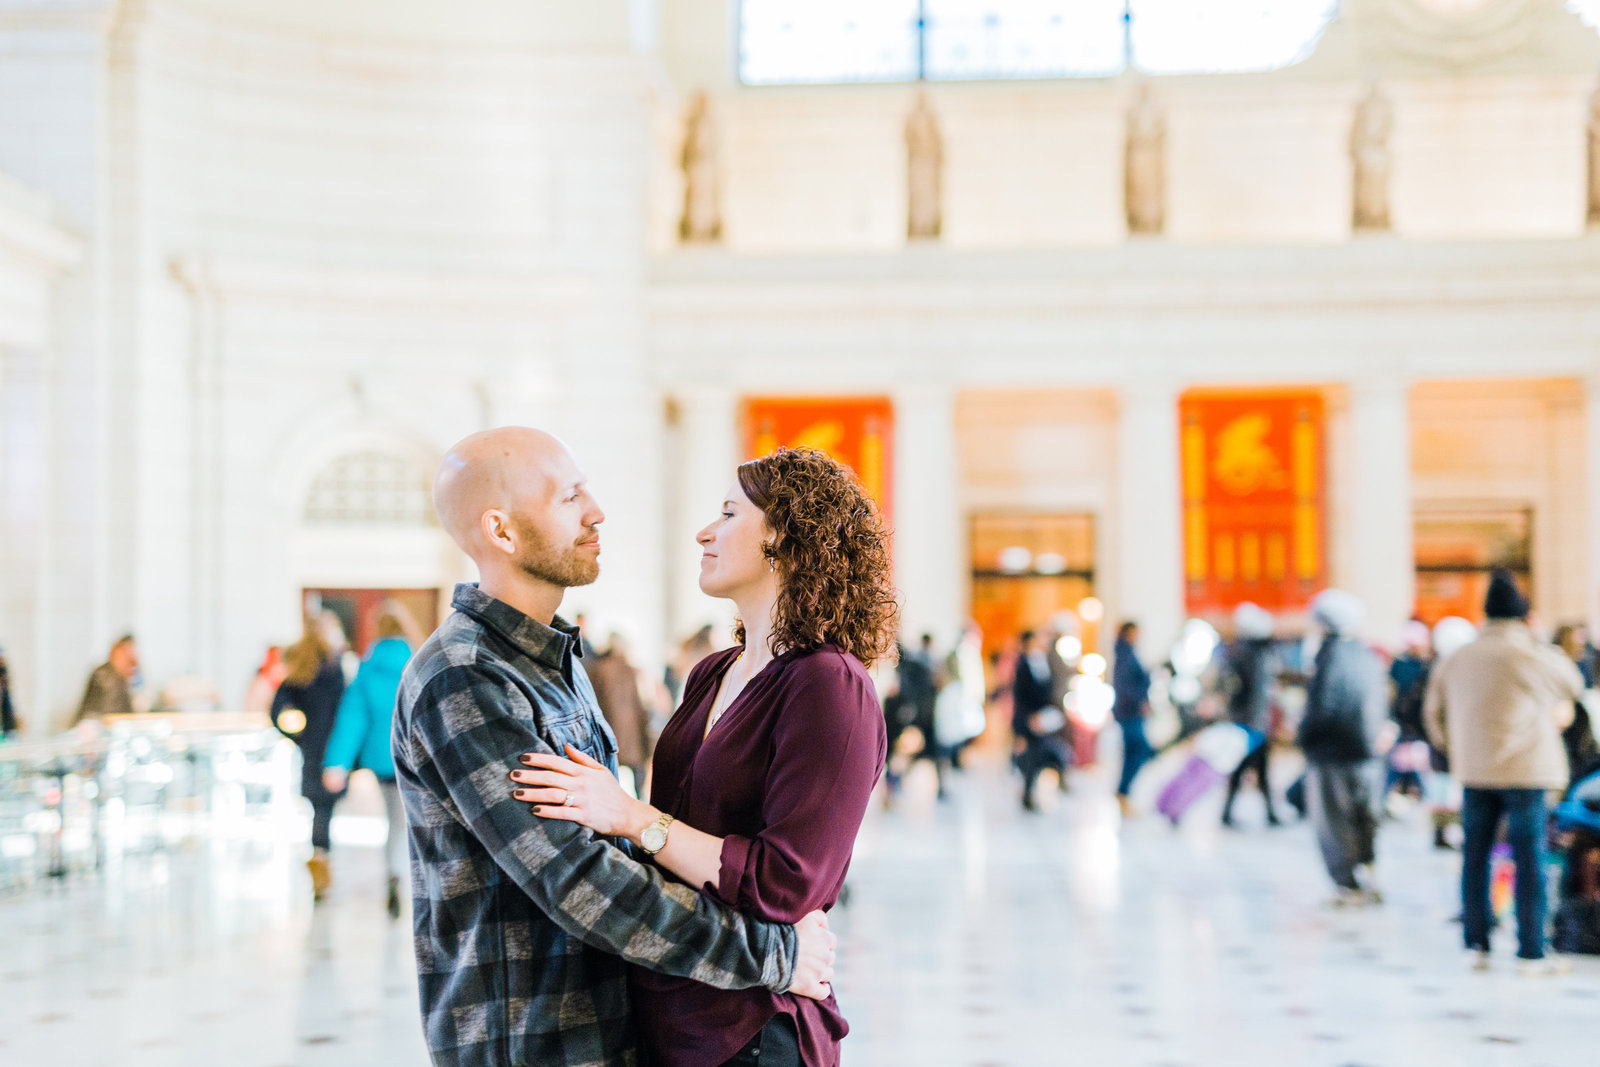 Union-Station-DC-Family-Photographer-Understitch-Photography-67